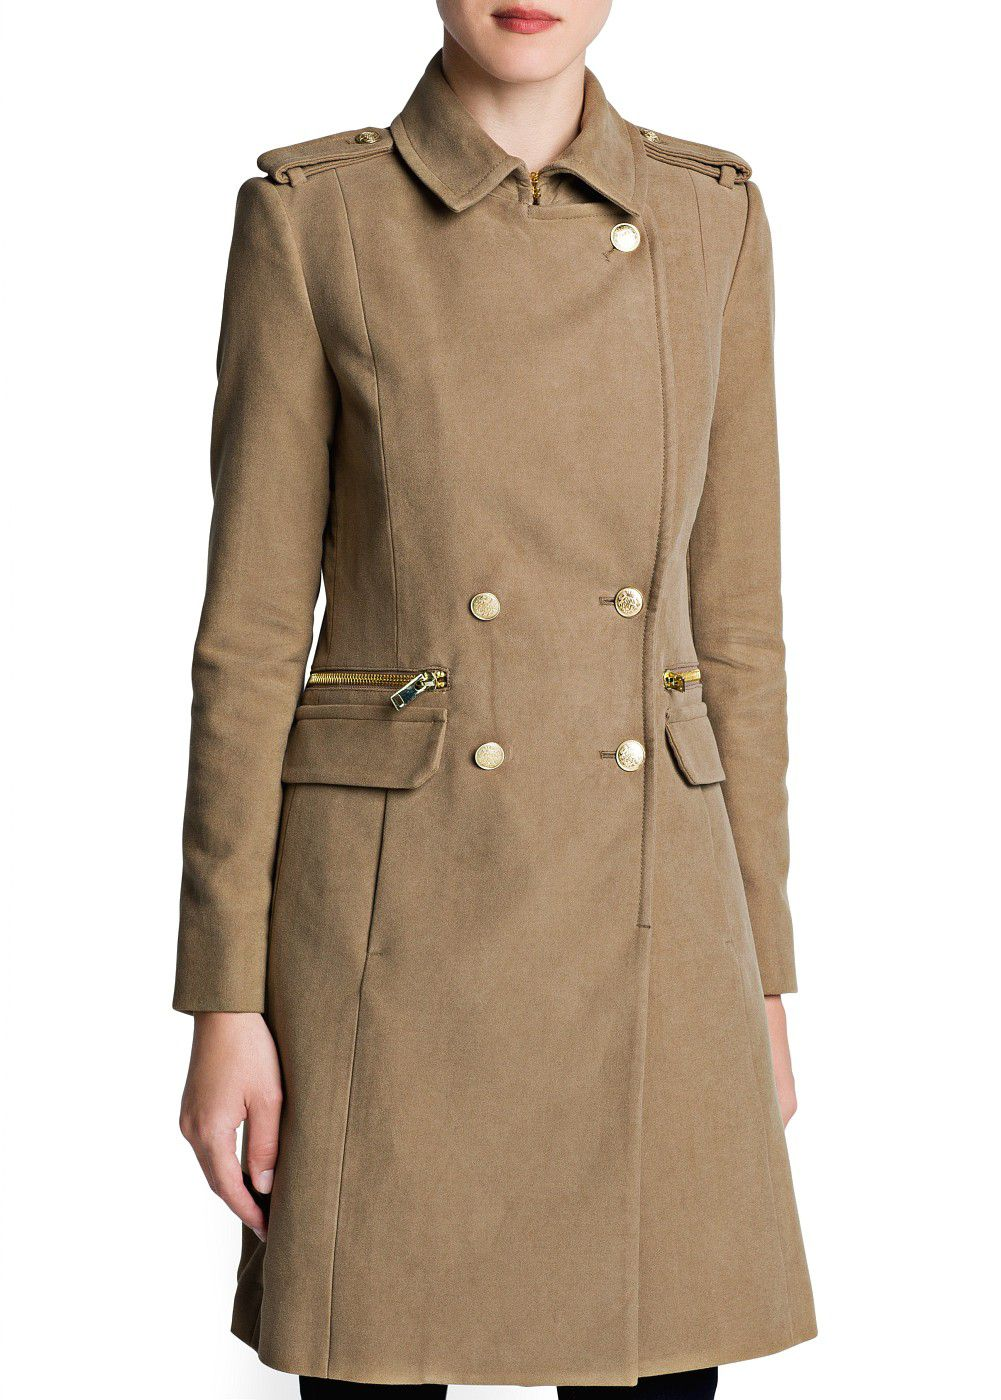 Brown regular military style jacket Save. Was £ Now £ Damsel in a dress fairfield military coat Save. Was £ Now £ Oasis Kate utility jacket Save. £ Sort by. Subscribe to our newsletter. Receive the latest offers and promotions. Follow us .